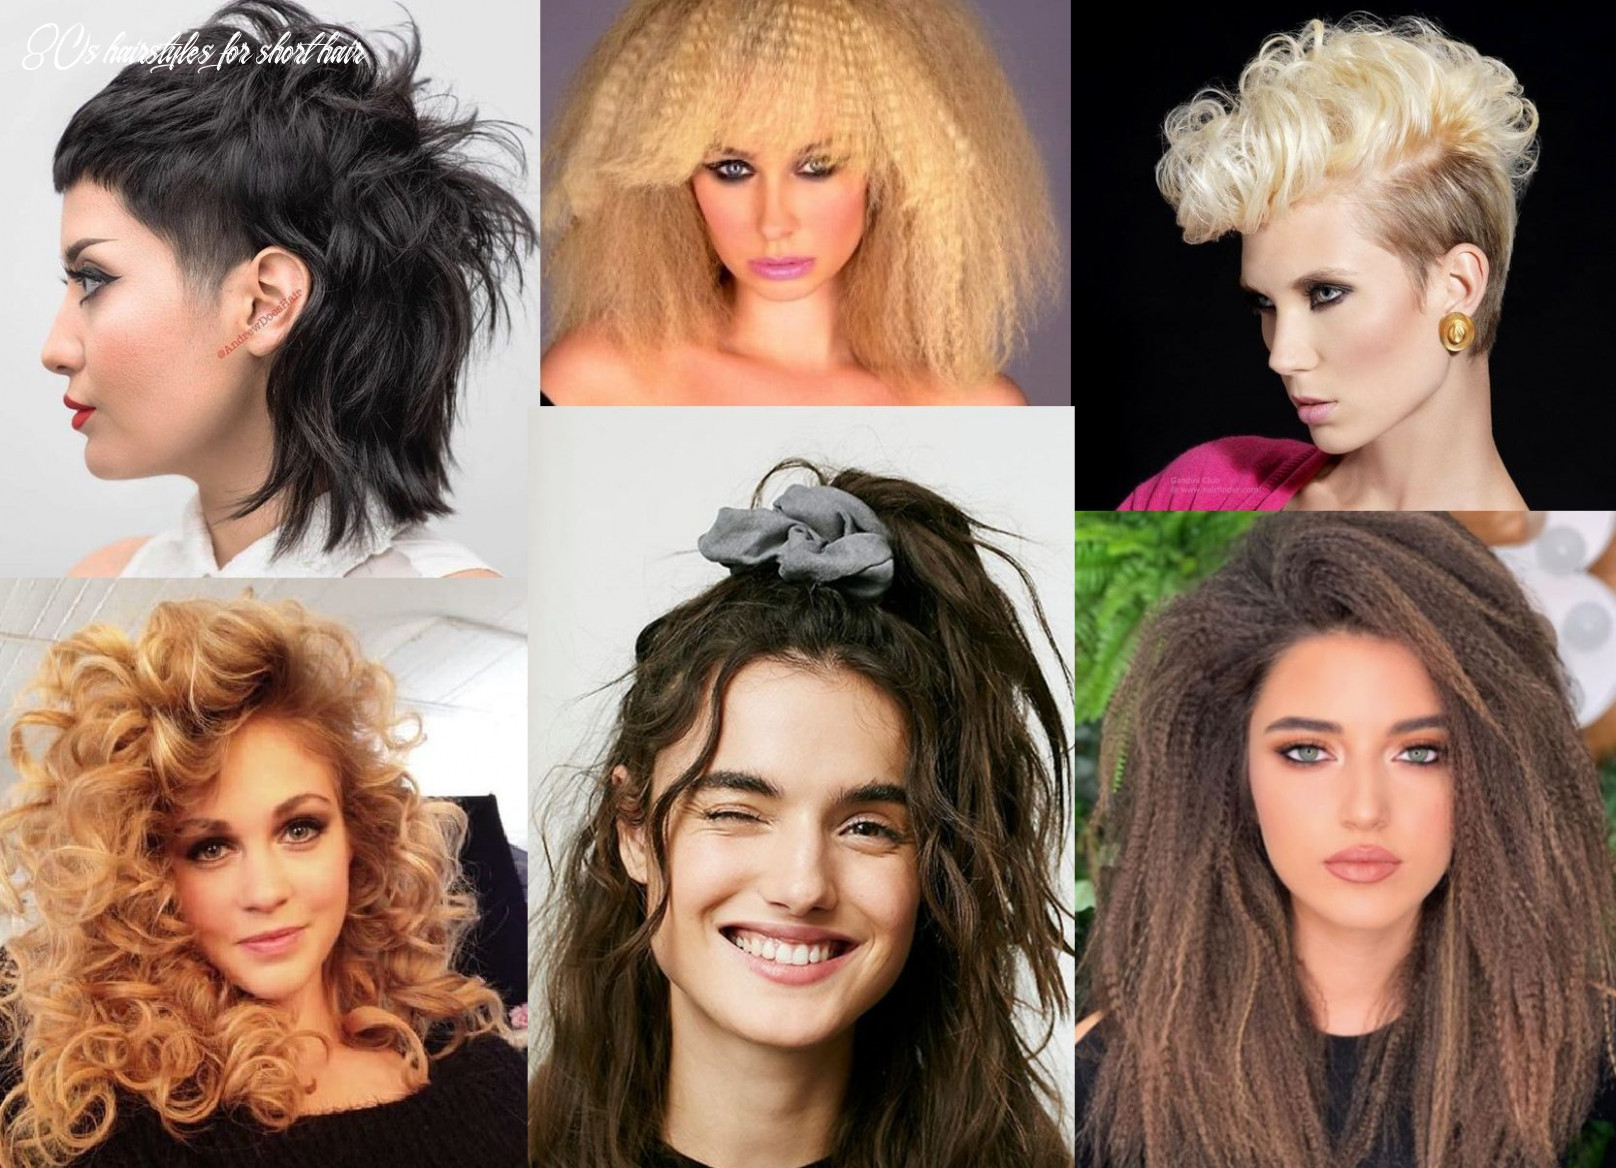 10s hairstyles 10 hairstyles inspired by the 1910s 80s hairstyles for short hair